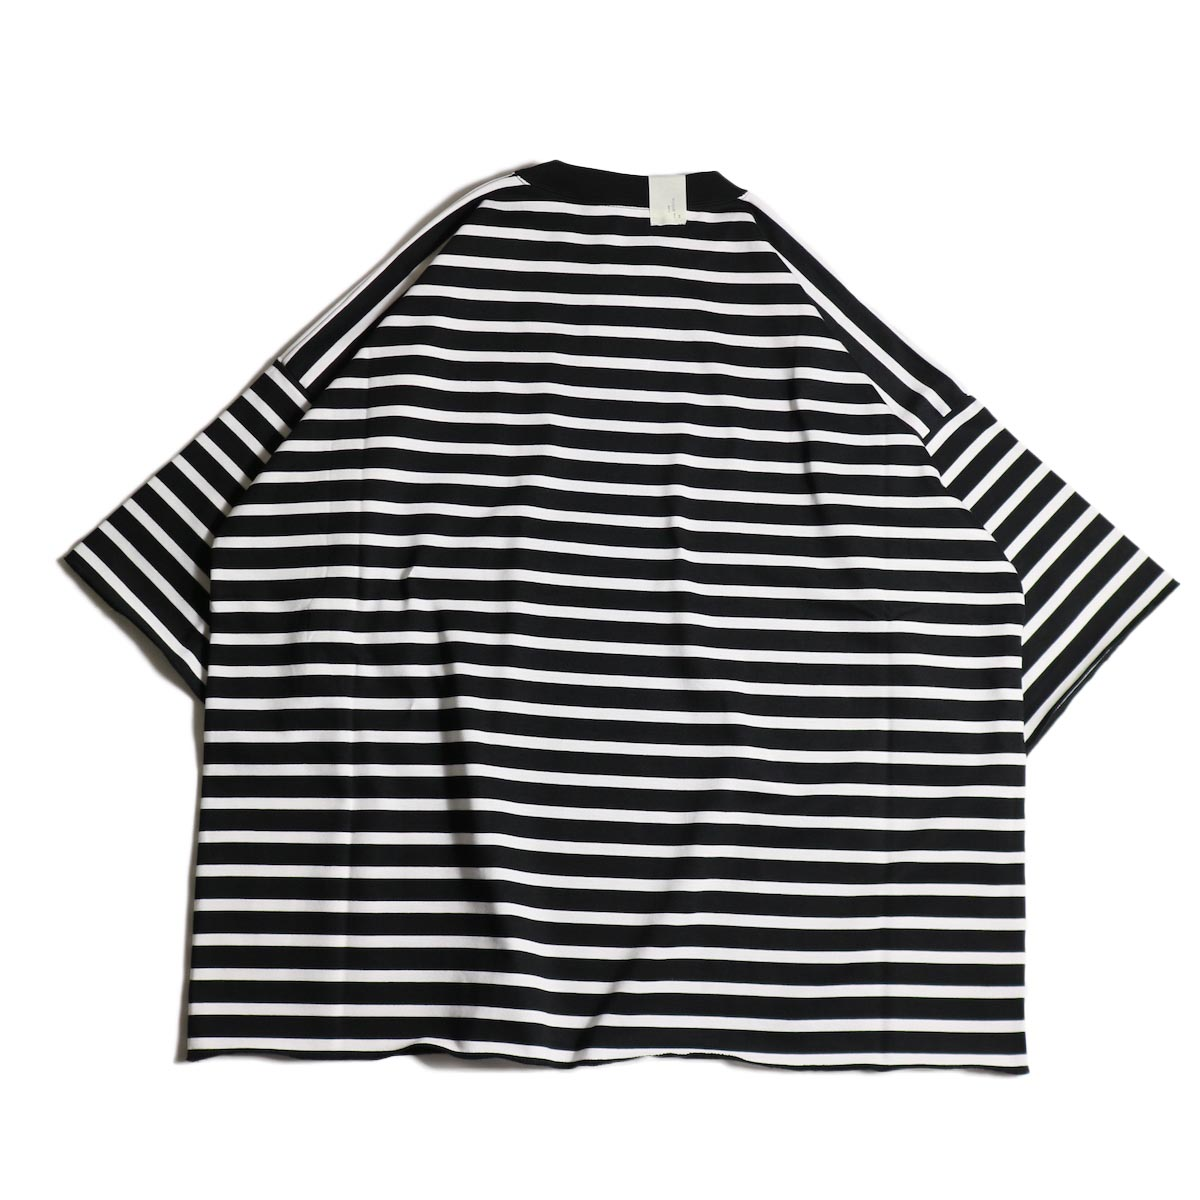 N.HOOLYWOOD / 1202-CS13-033 Big Tee (Black Border)背面